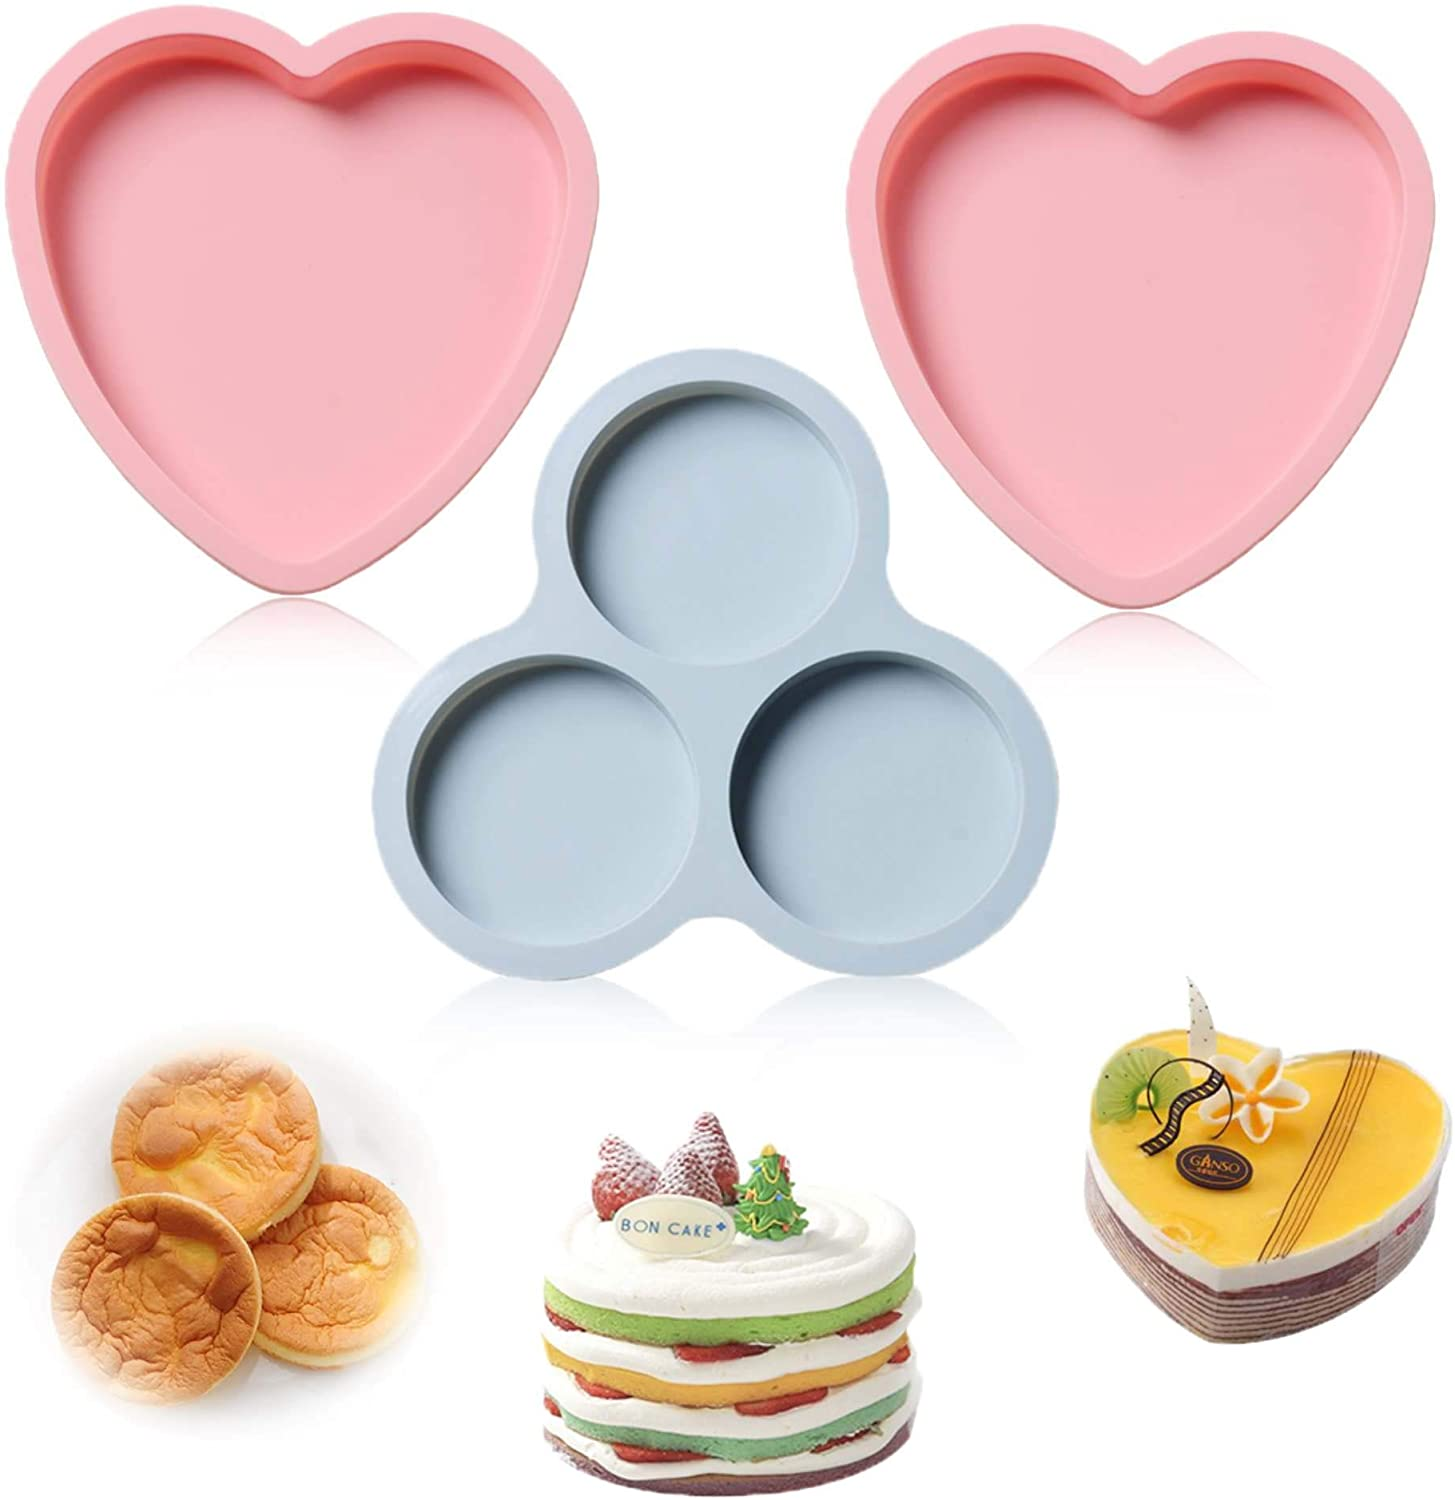 Jelly beans6 Cake Molds Silicone Round and Heart Shaped Baking Pans Set for Tarts, Cakes, Coasters, Pizza, Chocolate, Pie (Set of 3)